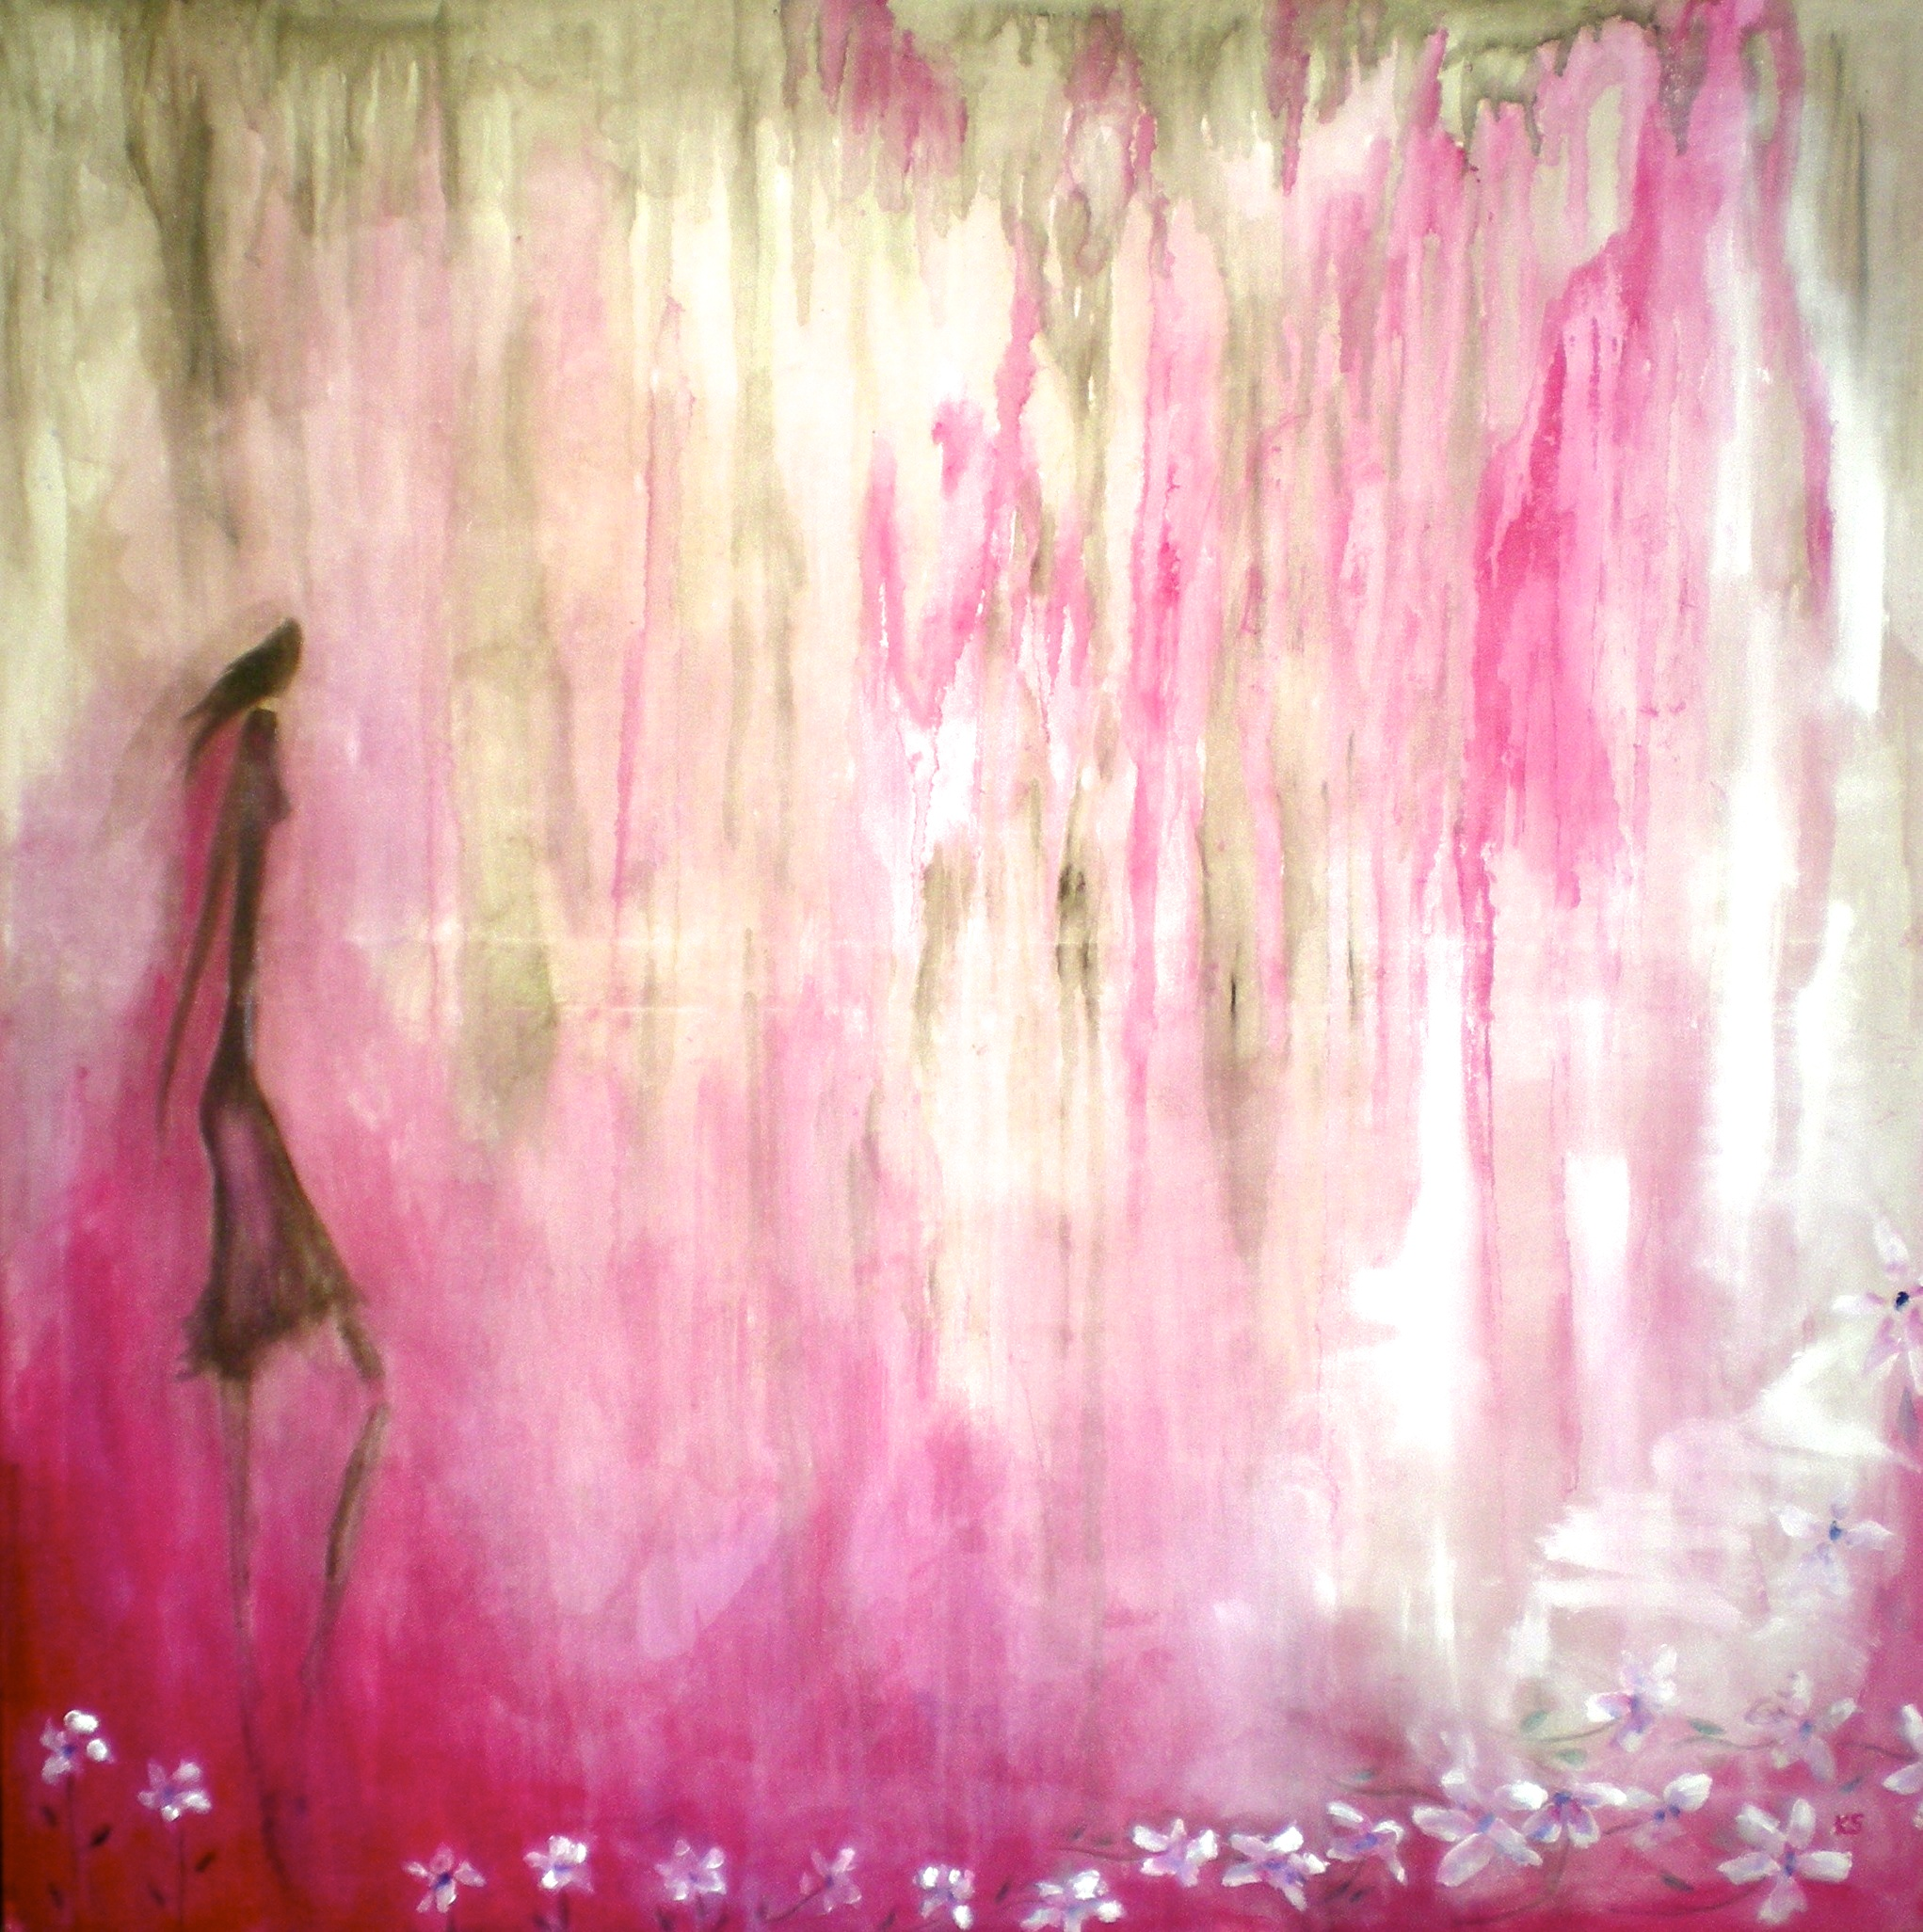 'Walking in the Pink' (sold) oil on canvas 100x100cm Katherine Scrivens Eje